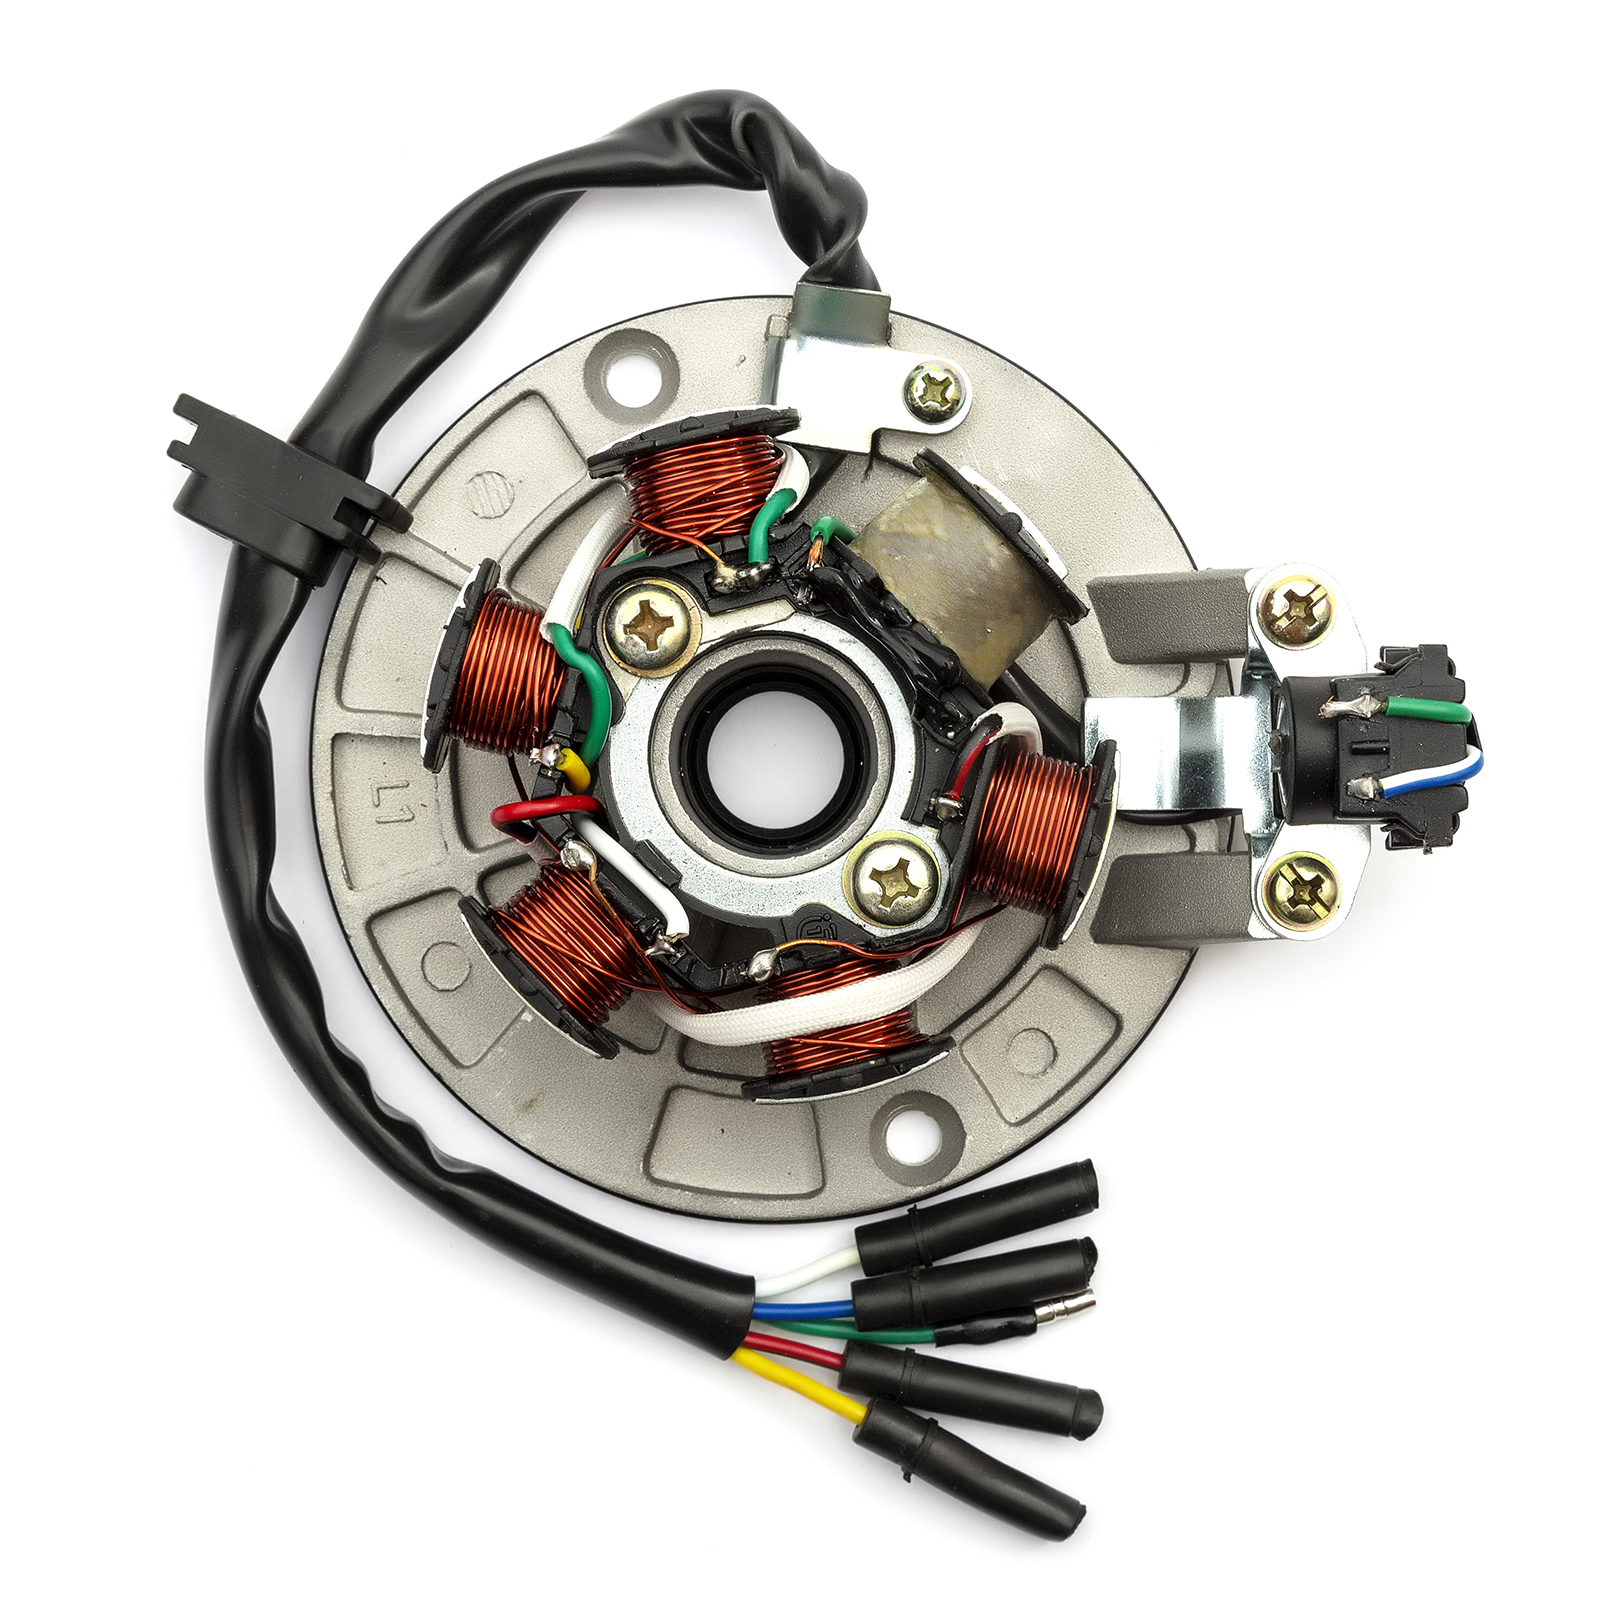 hight resolution of stator magneto 6 pole 5 wire pitbike yx140 yx150 yx160 dirtbike runs wiring diagrams besides pit bike clutch cable besides dirt bike wiring